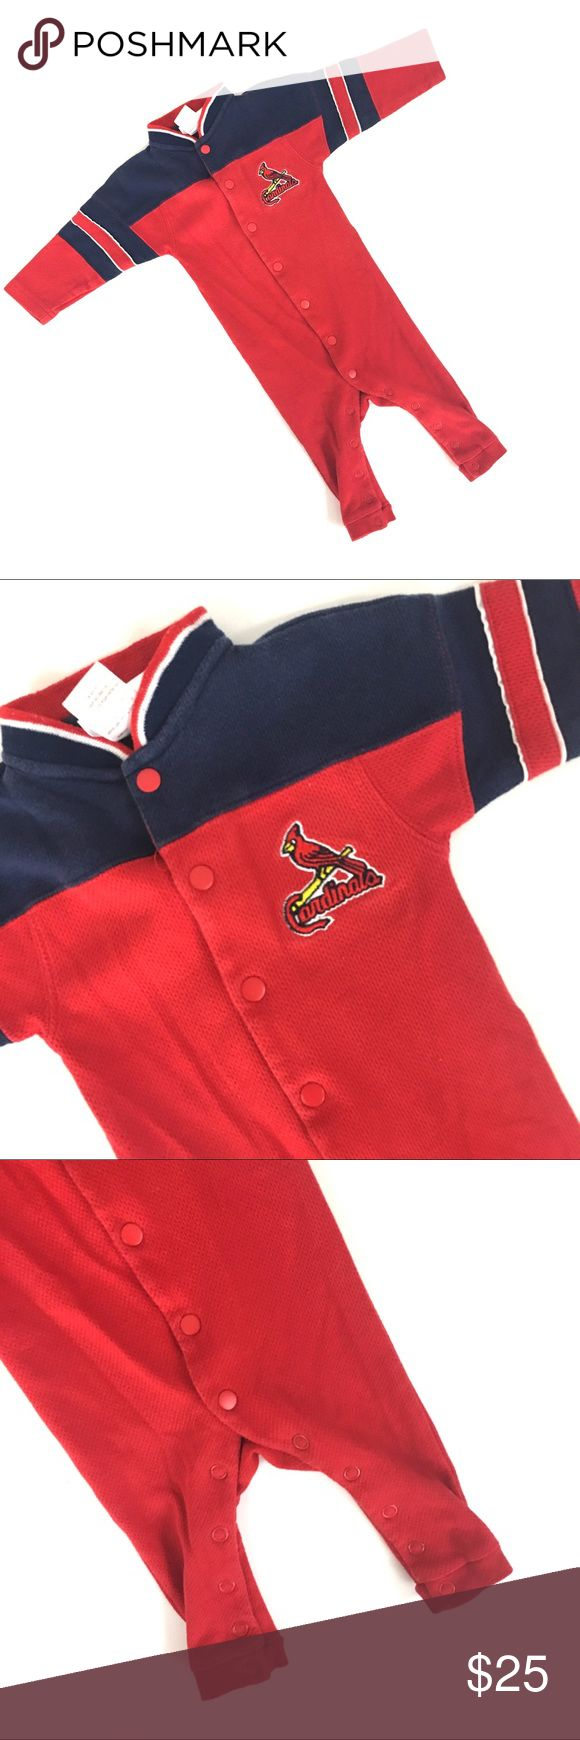 Infant Cardinals jumpsuit/bodysuit Sleeper without feet. Gently used. Size 12 months. Cardinals baseball authorized MLB merchandise   🌹no trades 🌹discounts on bundles of 2+  🌹1000 items listed, take a peak!  🌹suggested user, posh compliant:) MLB One Pieces